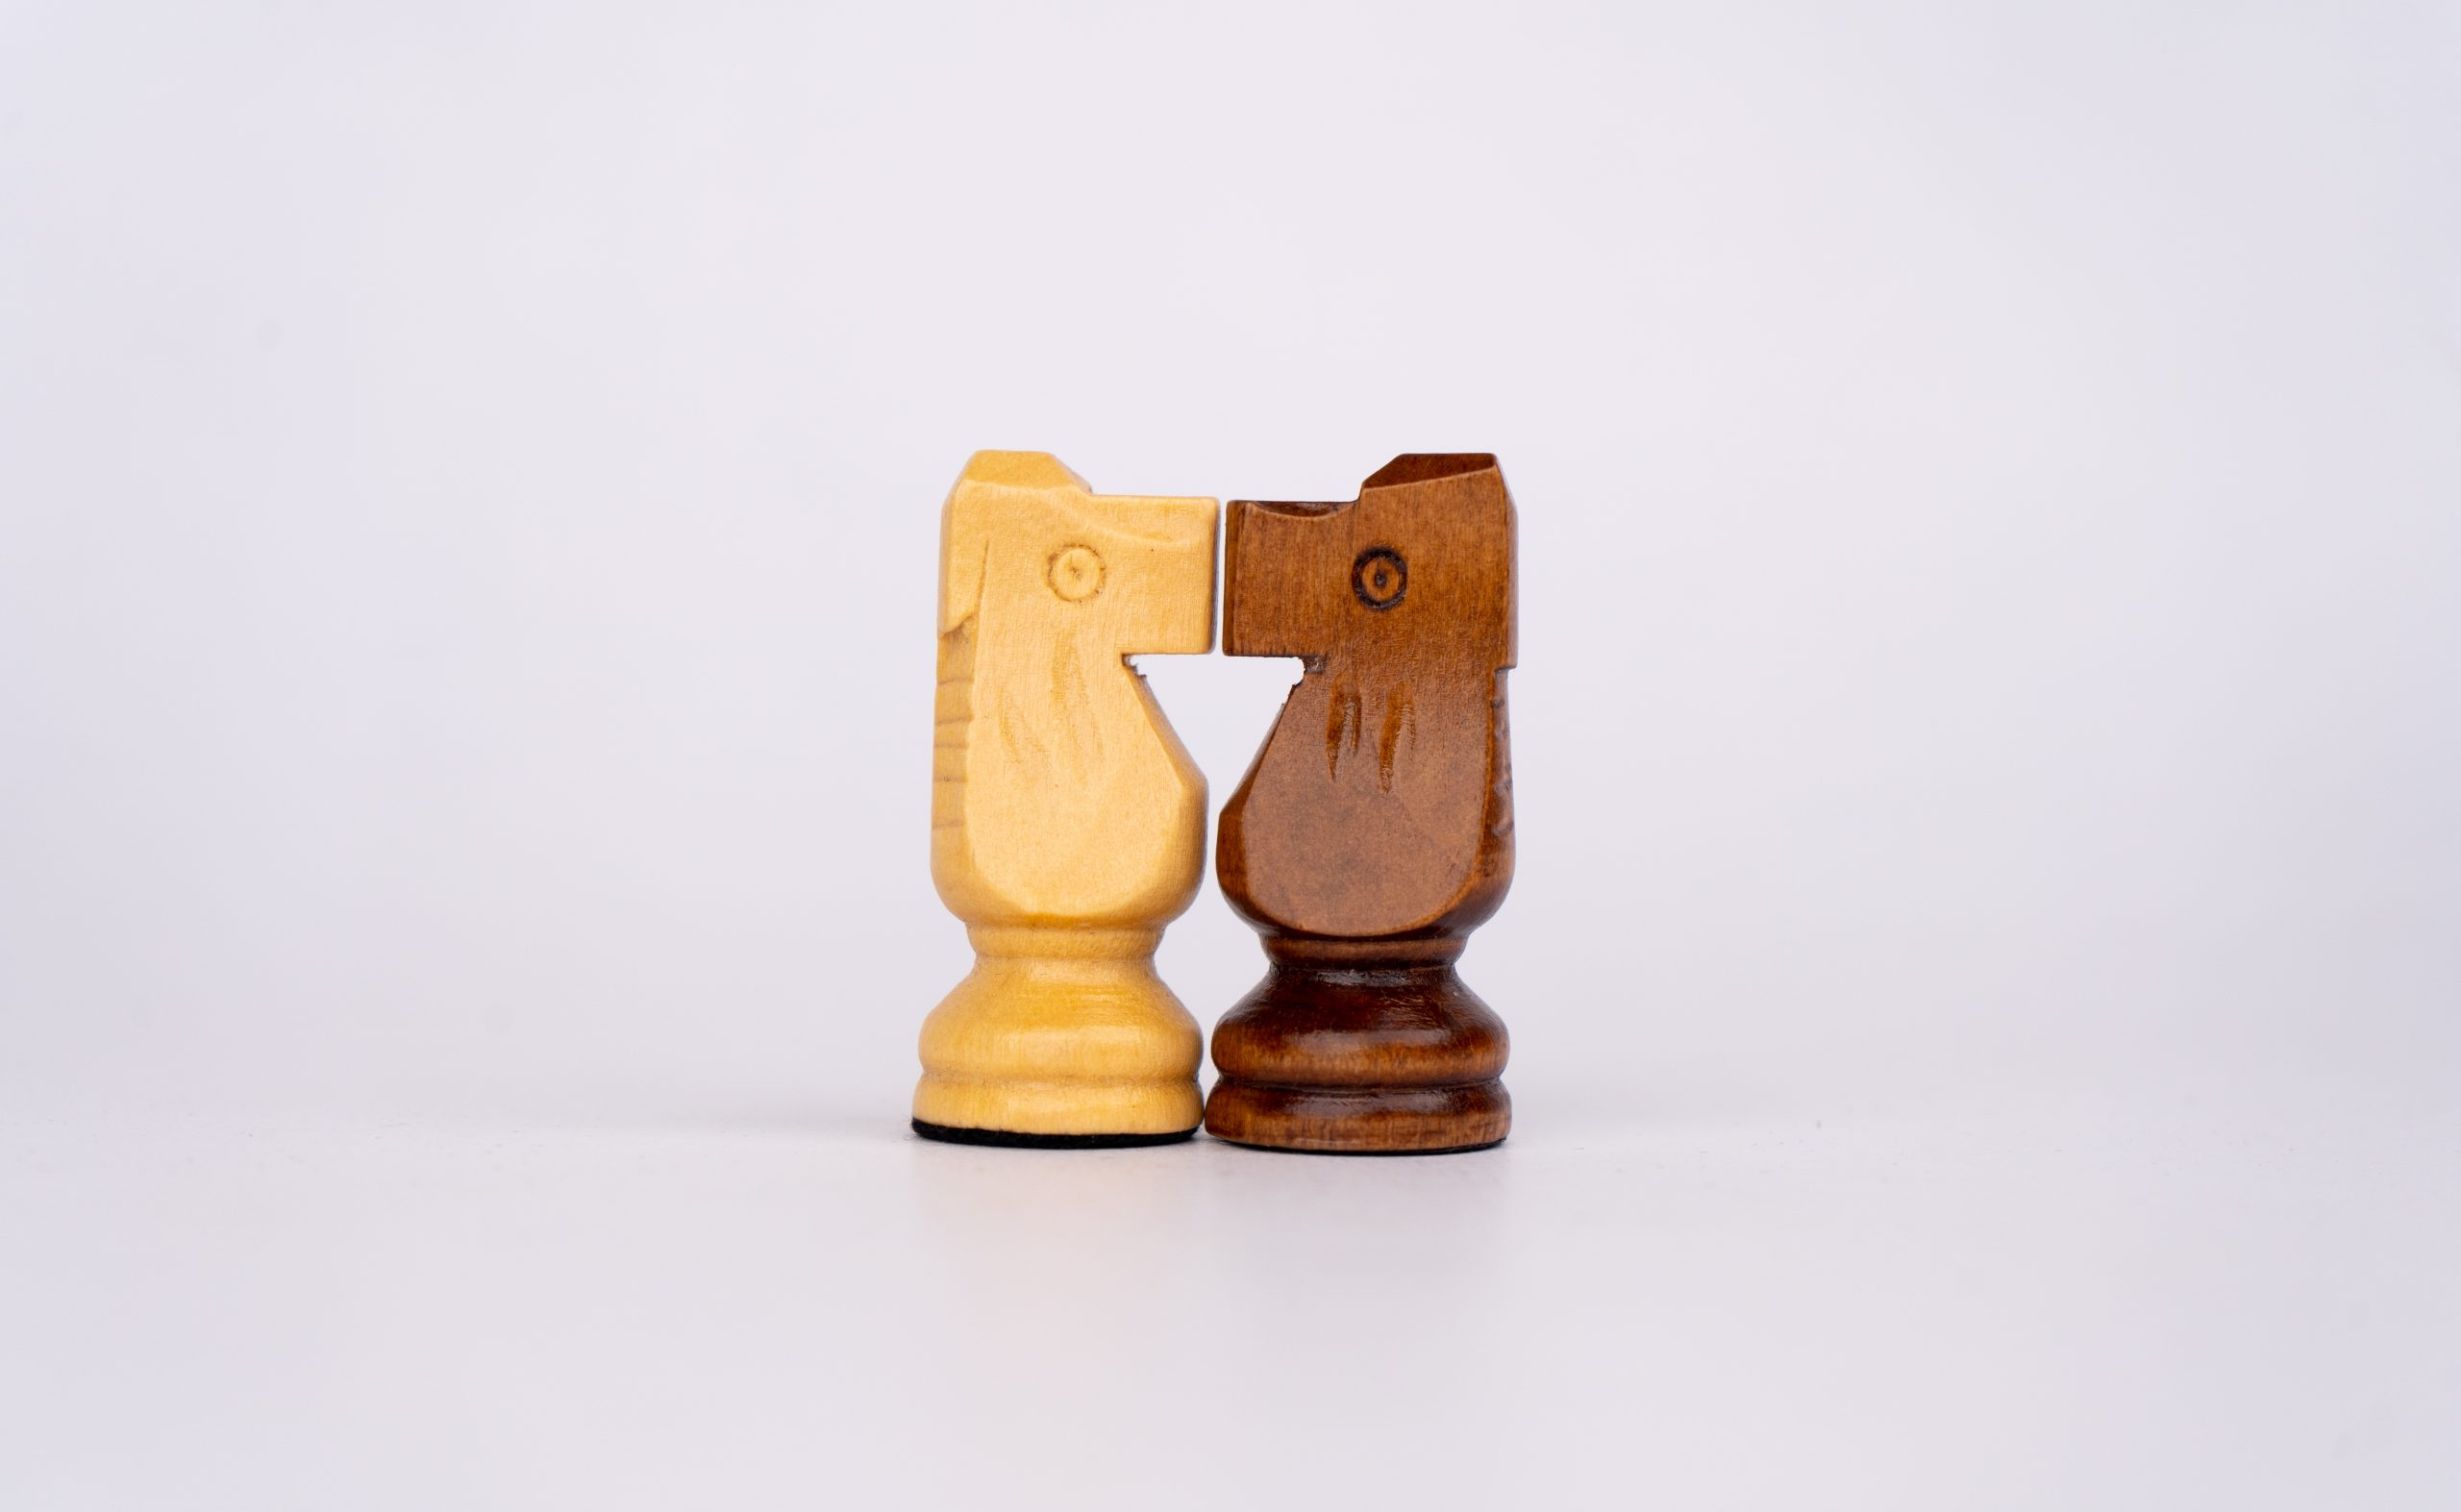 Knights chess piece standing close to each other